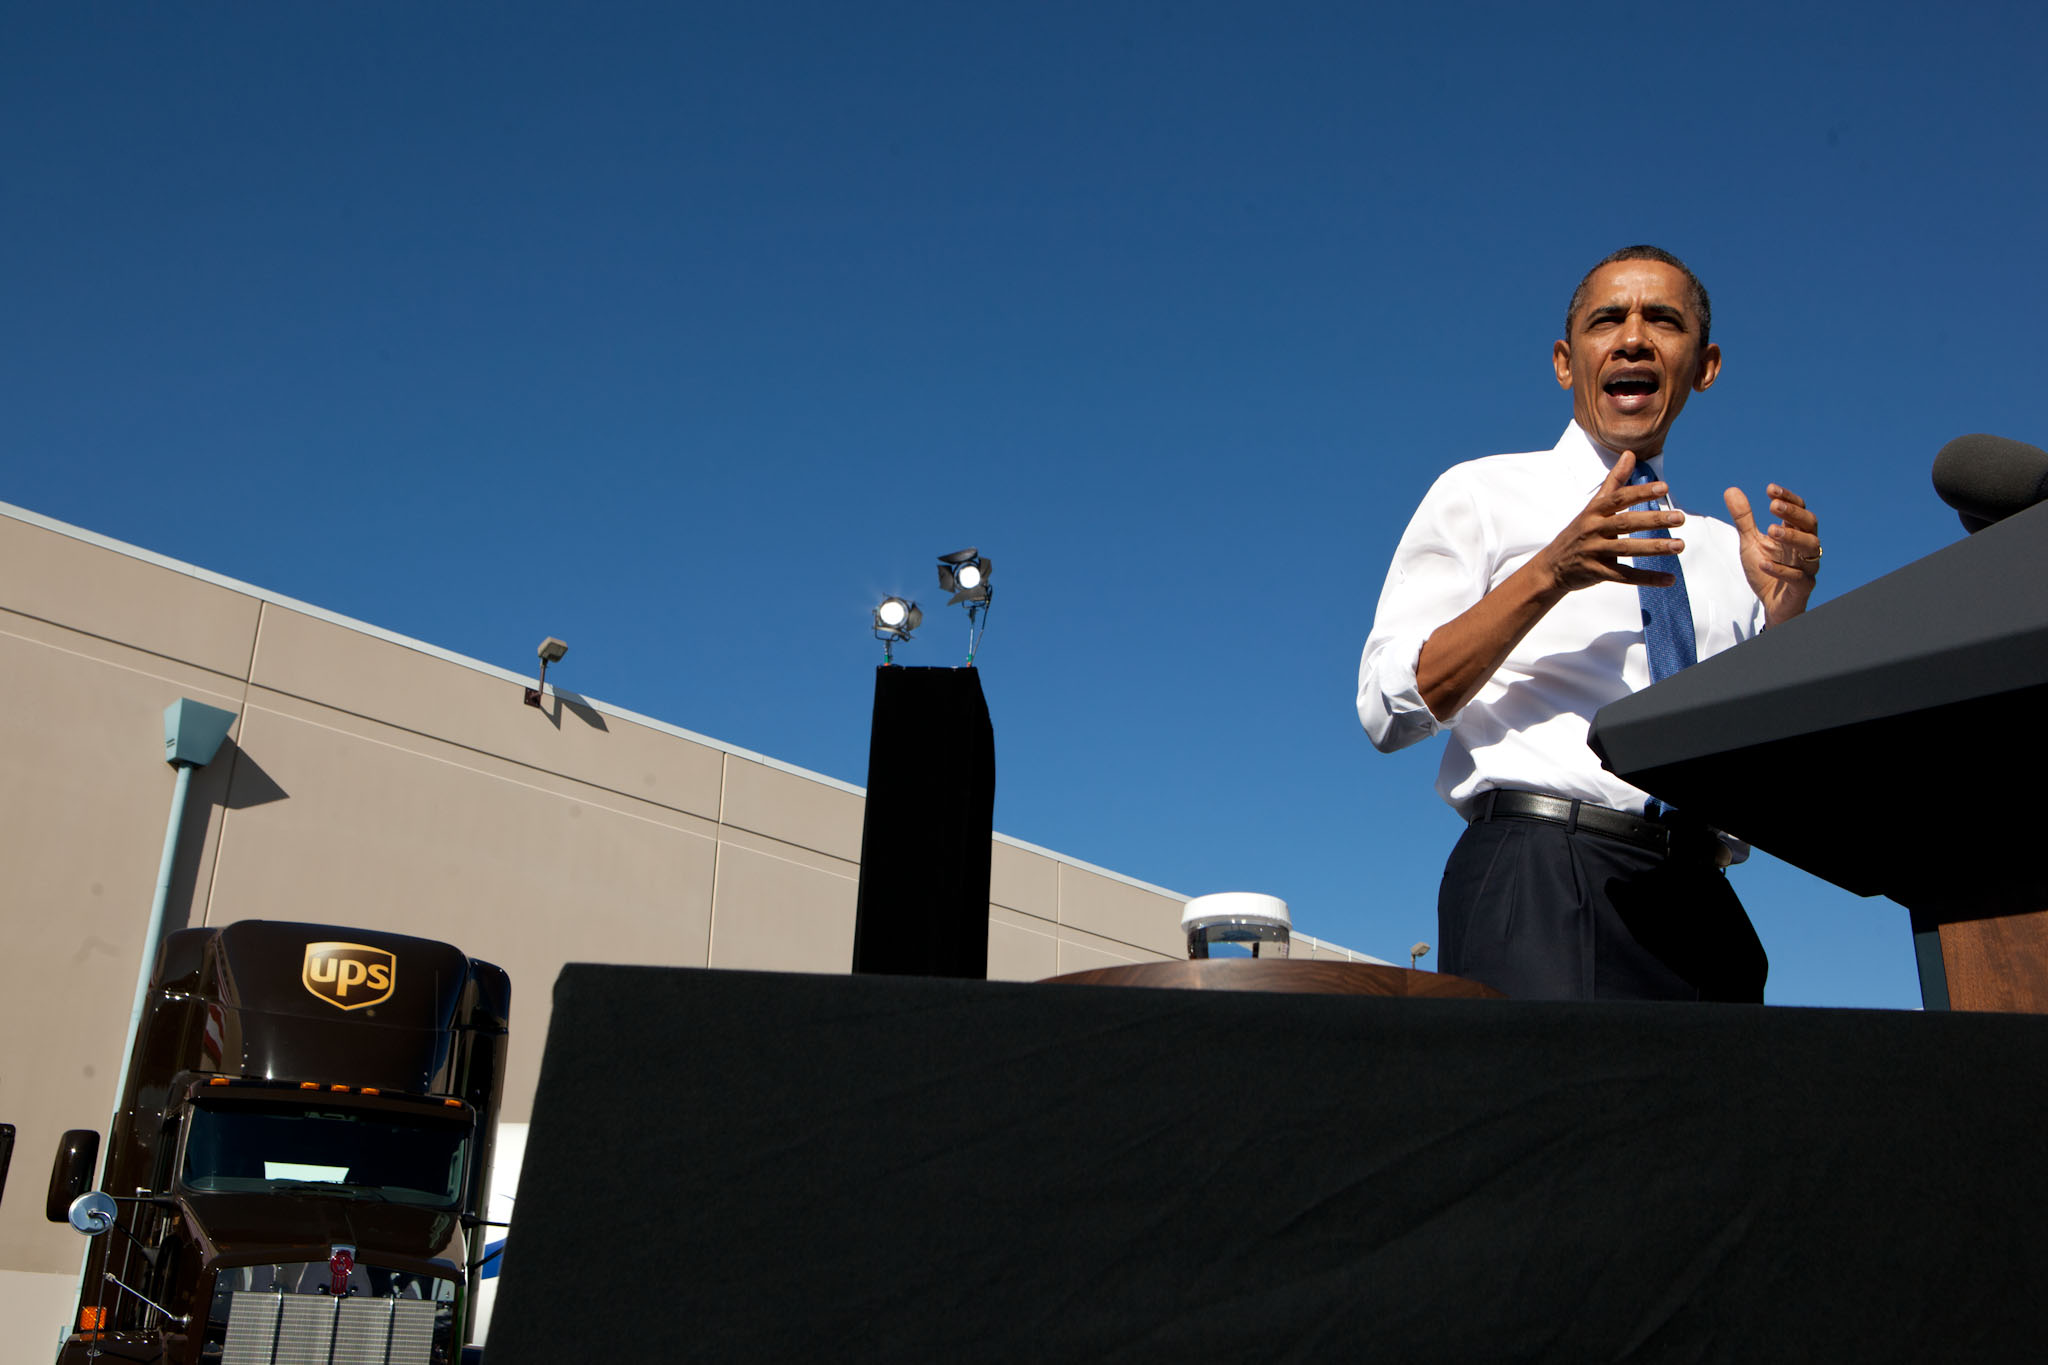 President Barack Obama delivers remarks on energy at UPS Las Vegas South